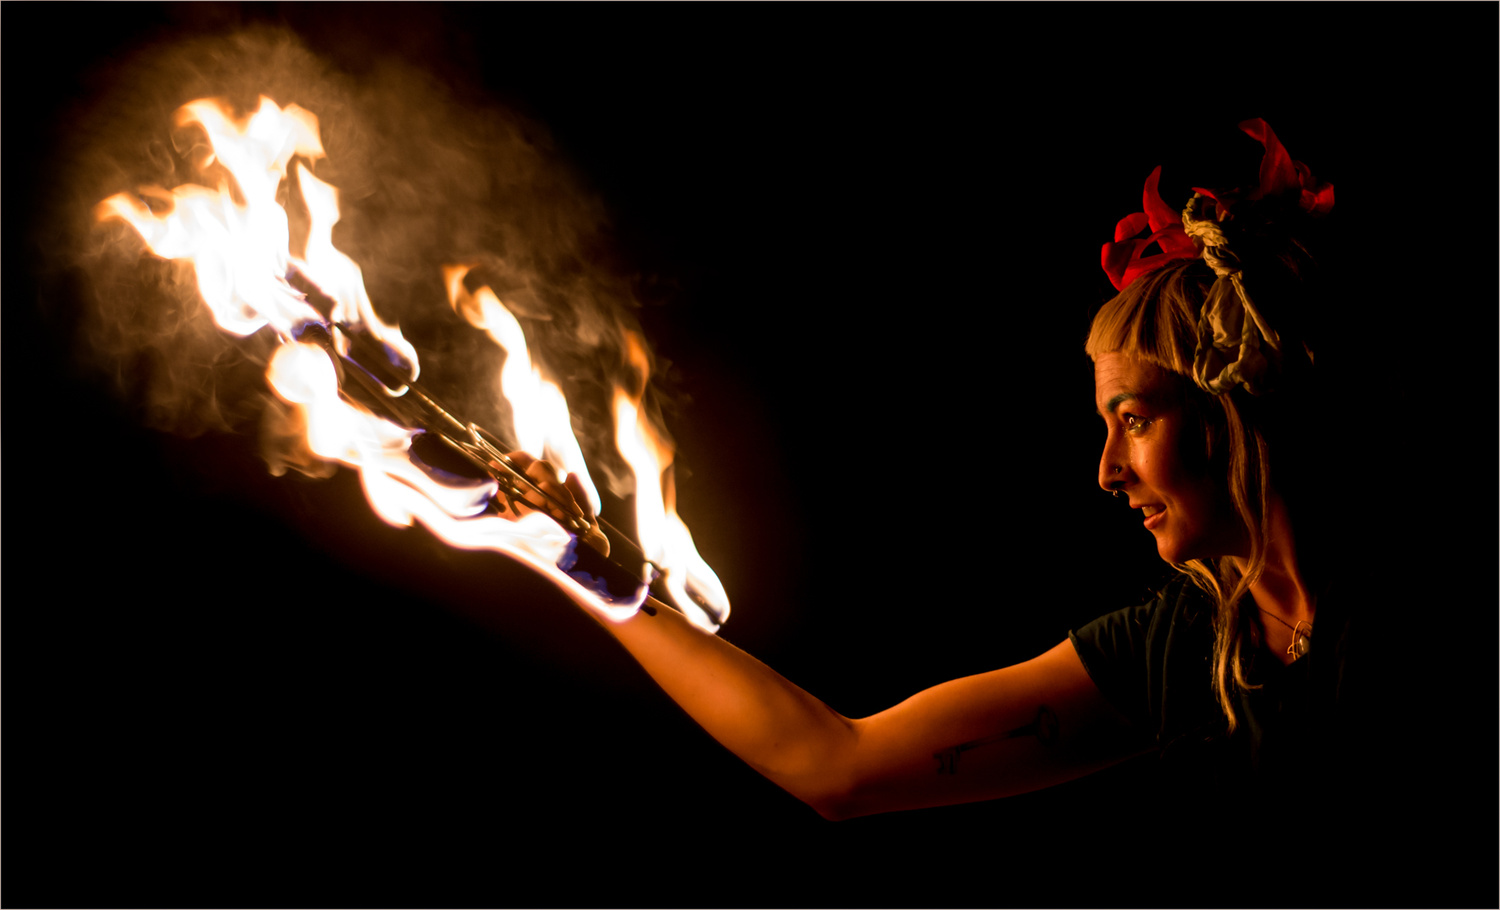 Playing with Fire by Rhoderic Lourens